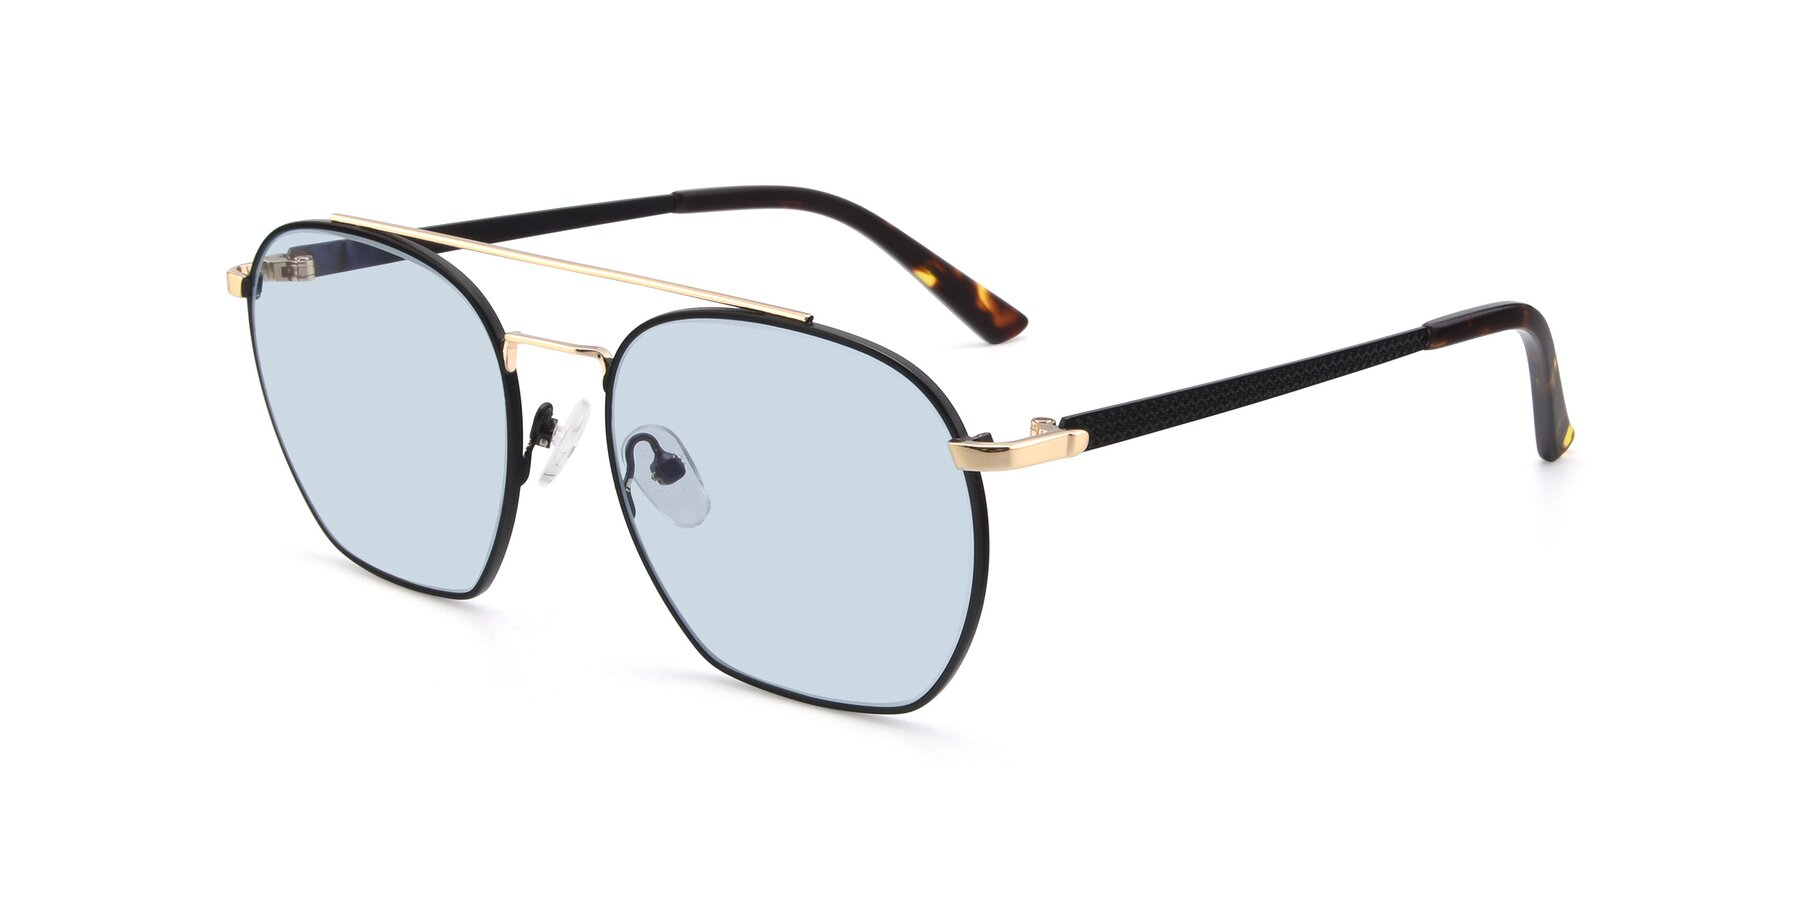 Angle of 9425 in Black-Gold with Light Blue Tinted Lenses